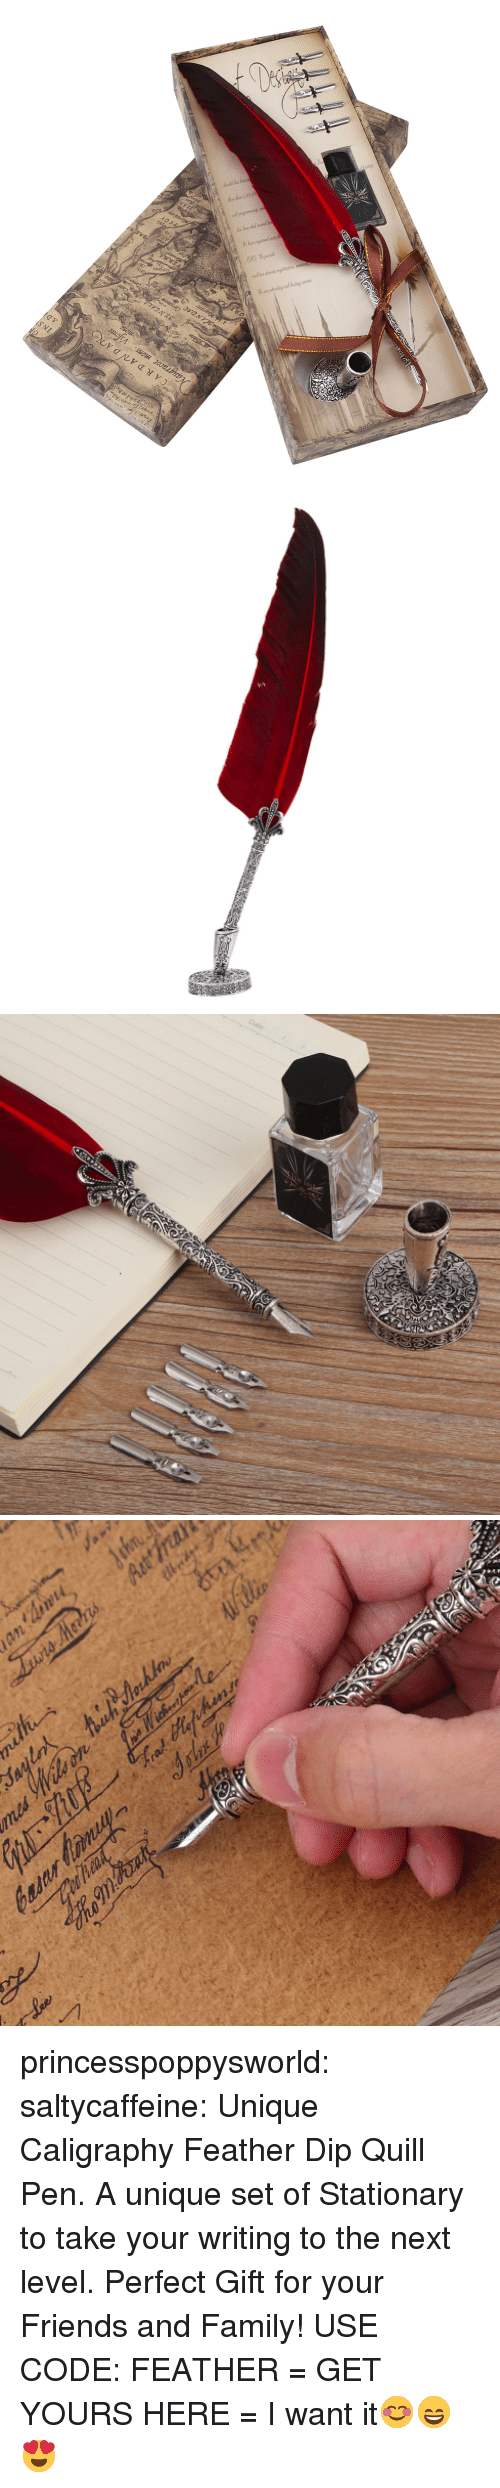 Quill: princesspoppysworld:  saltycaffeine:  Unique Caligraphy Feather Dip Quill Pen. A unique set of Stationary to take your writing to the next level. Perfect Gift for your Friends and Family! USE CODE: FEATHER = GET YOURS HERE =   I want it😊😄😍